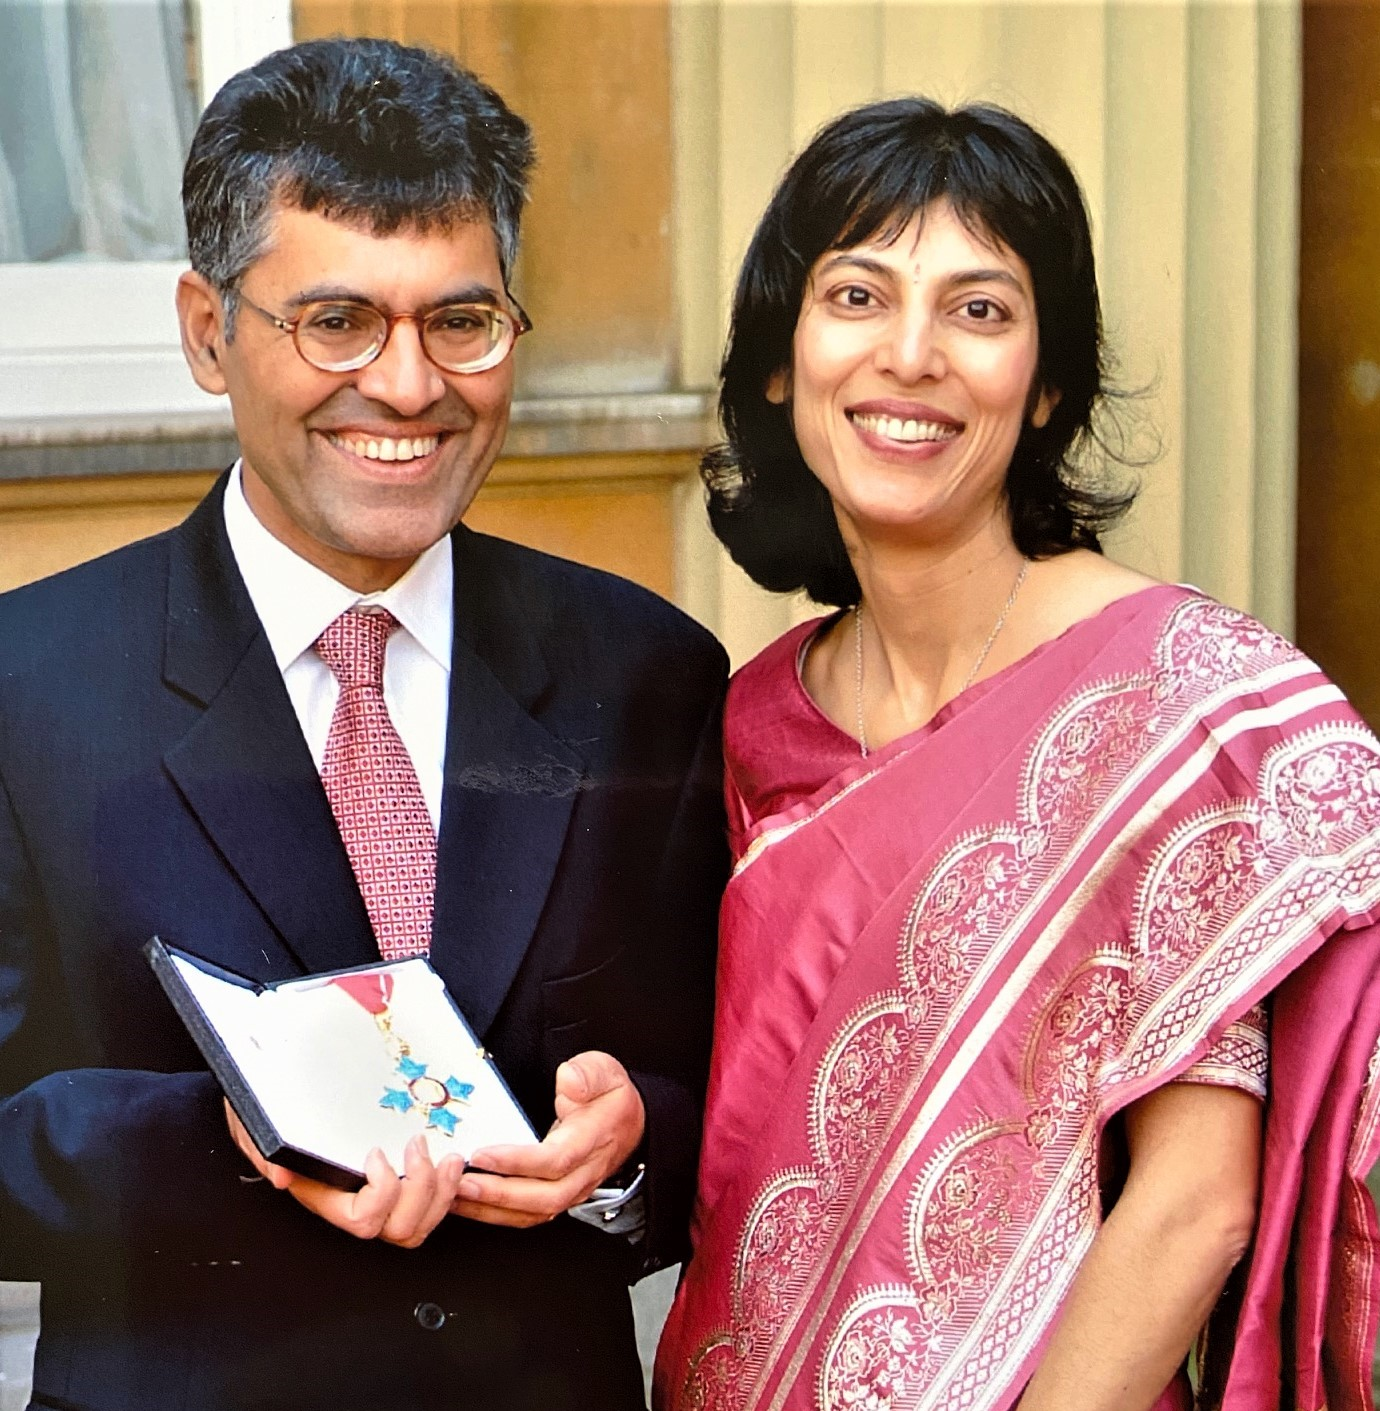 Prof Raj Bhopal and his wife, Roma, at his CBE investiture at Buckingham Palace in 2001.